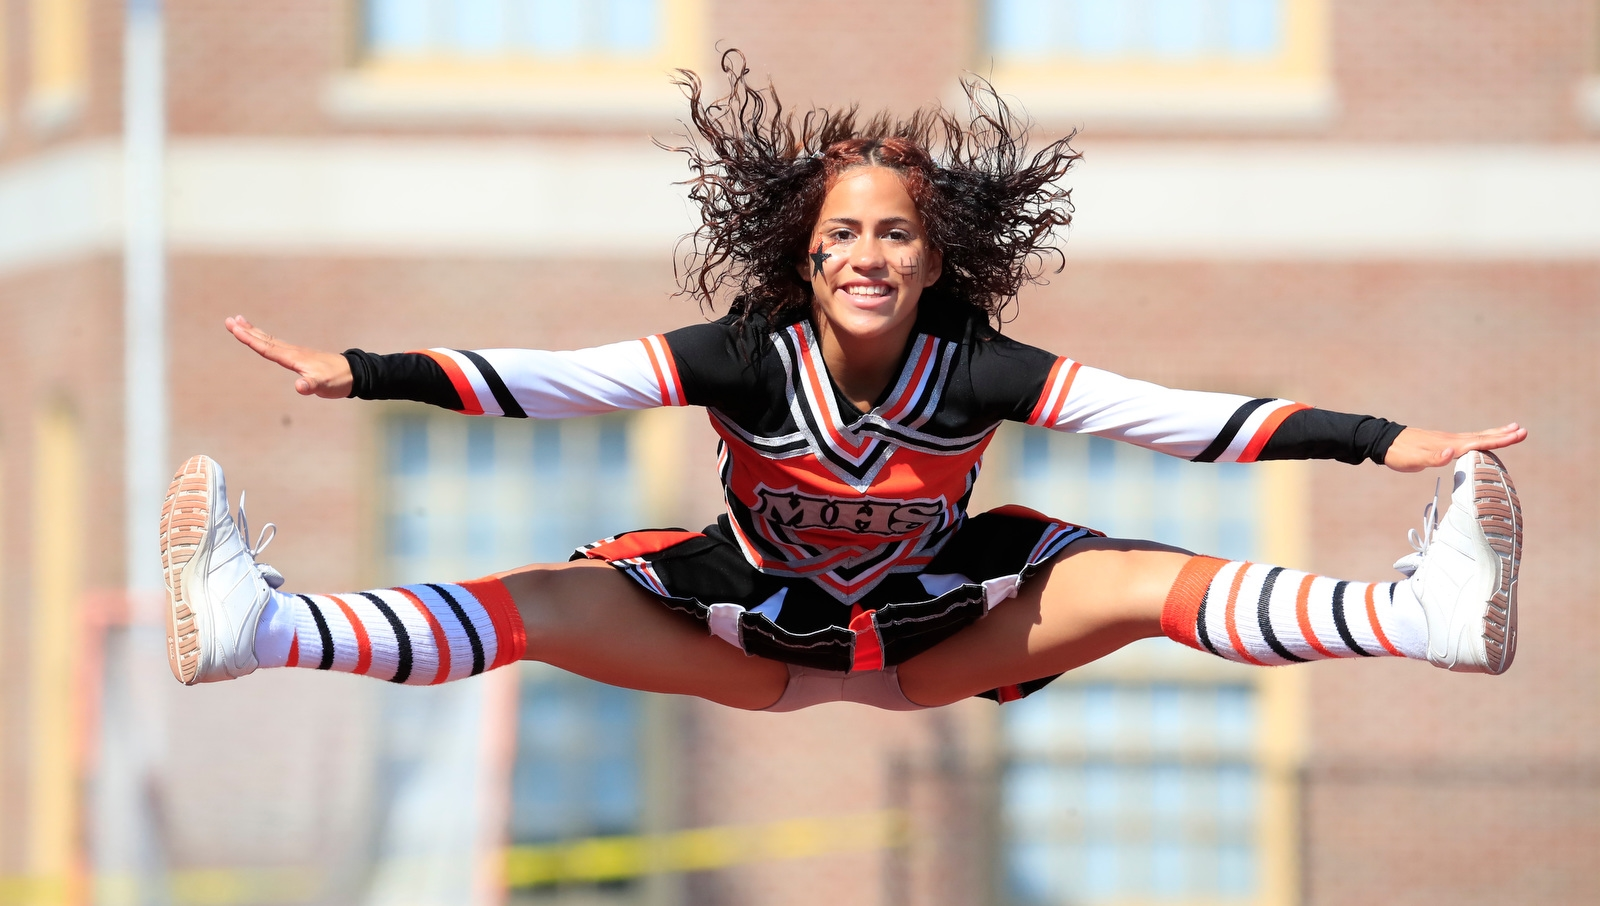 McKinley cheerleader Destiny Pagon jumps during first half action against South Park at Robert E. Rich All High Stadium on Saturday, Sept. 23, 2017.